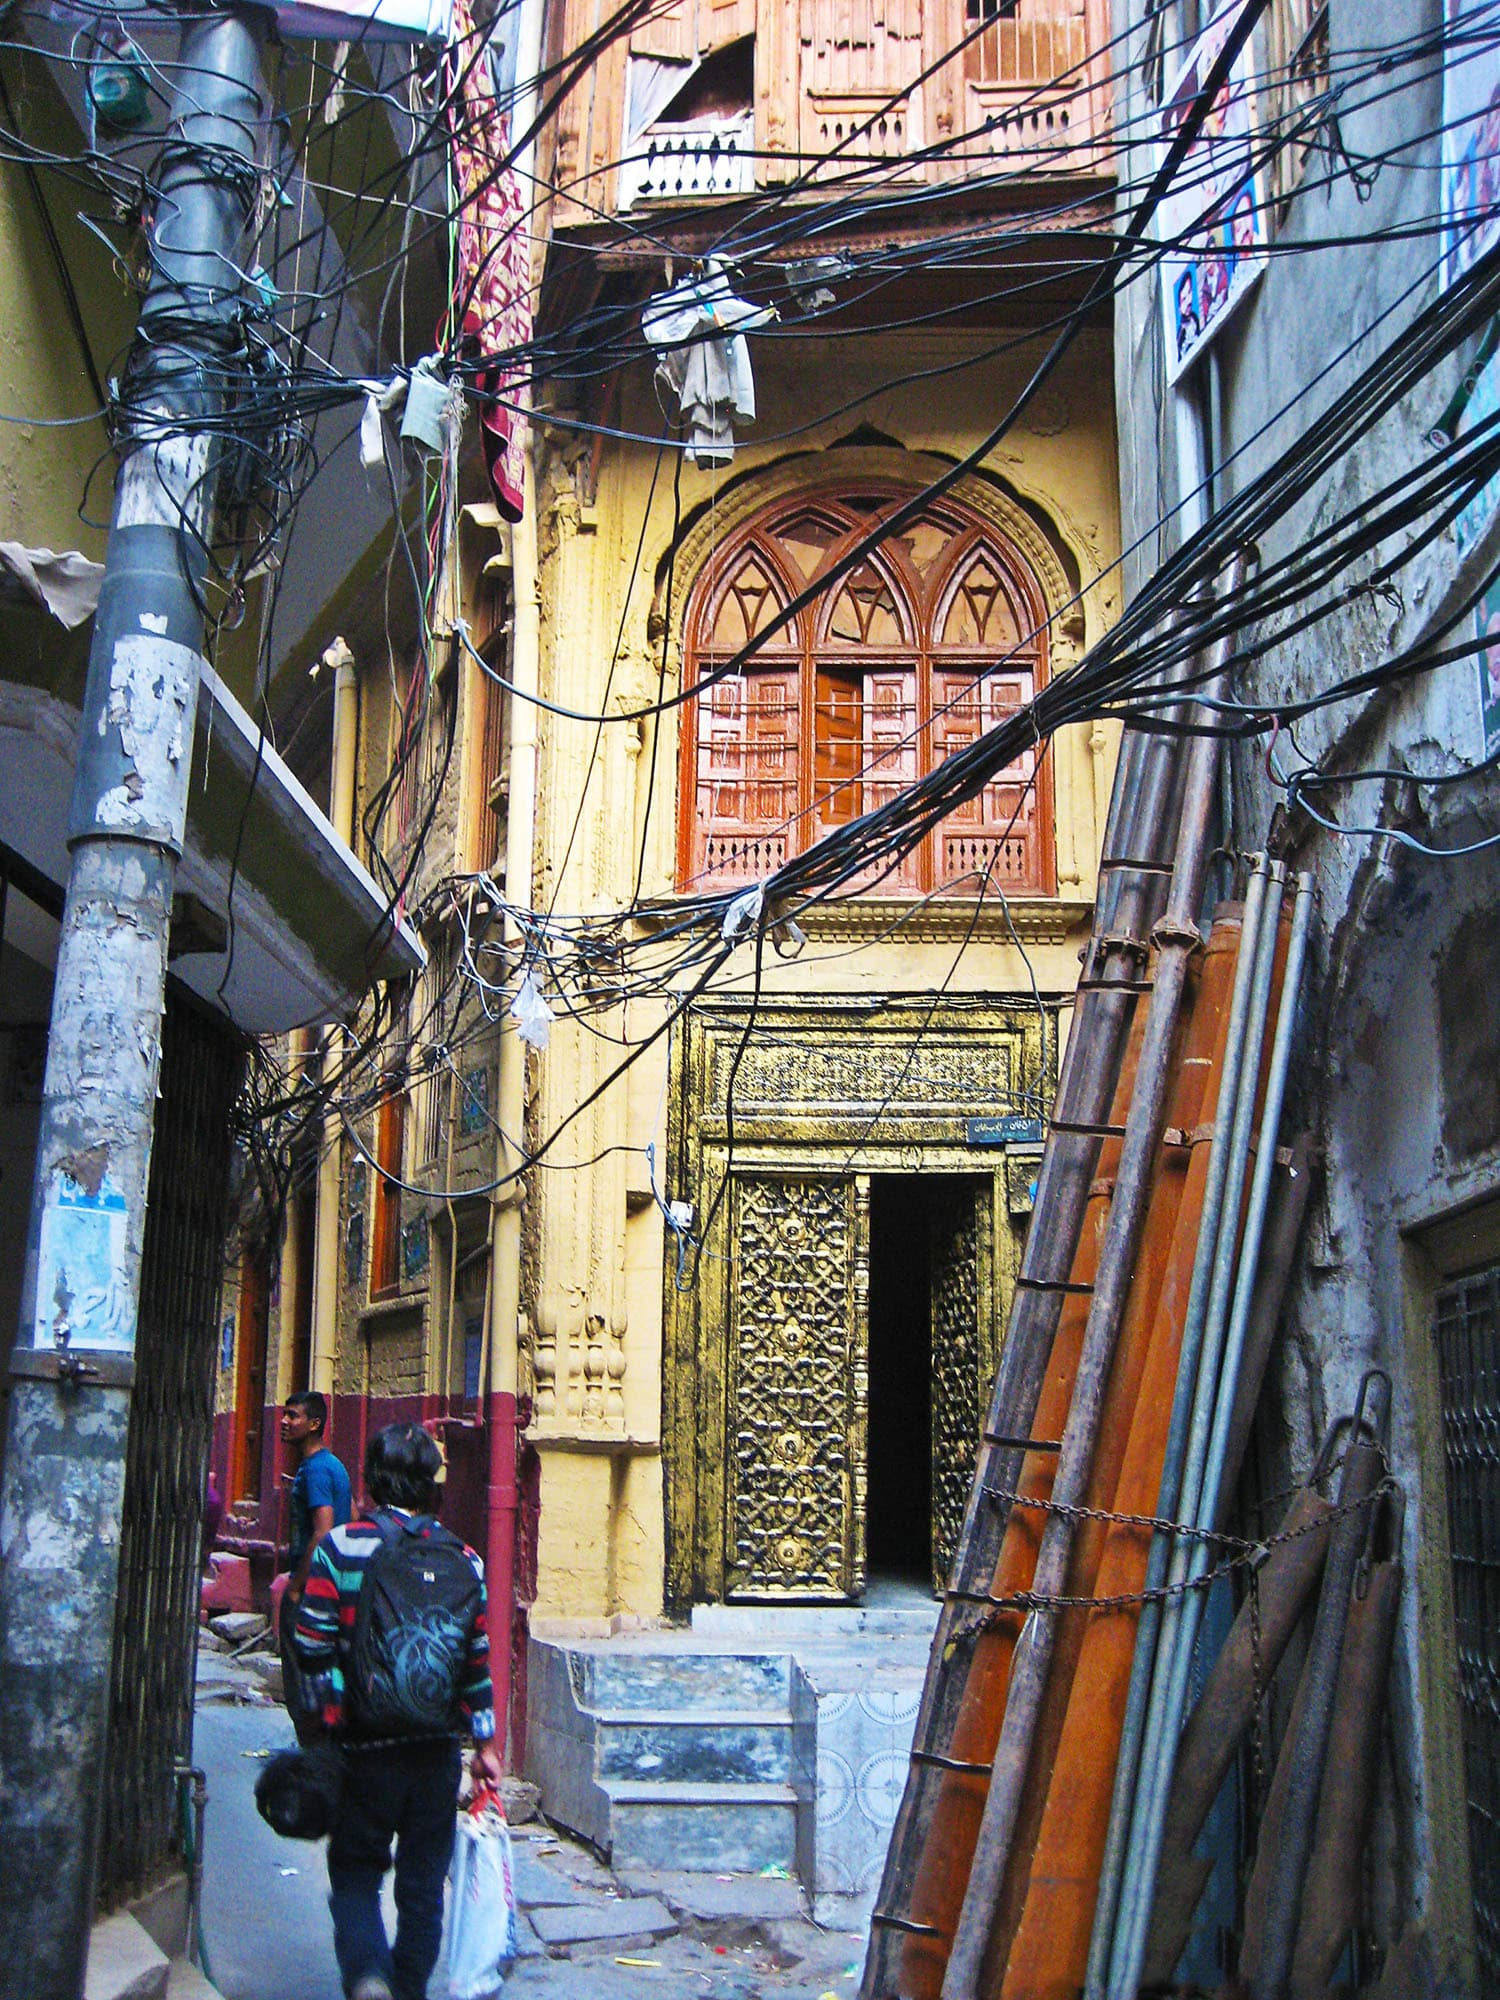 Narrow passageways with façades of old houses.